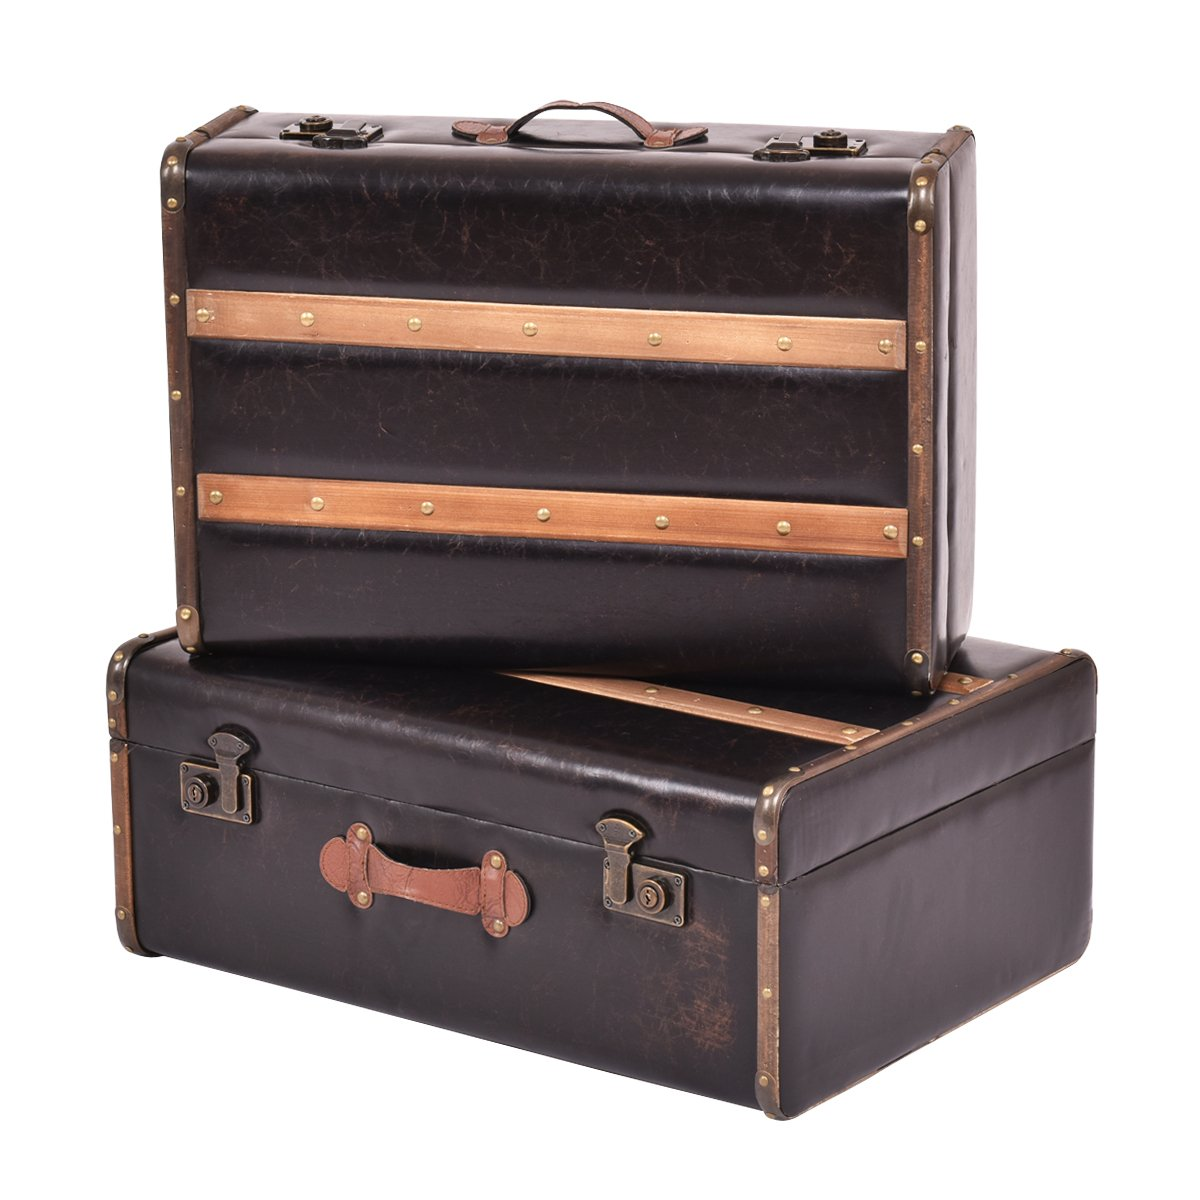 Goplus Set of 2 Vintage Suitcase, Old Style Suitcase, Retro Antique Luggage, Train Case, Wooden Leather Suitcase Storage Boxes